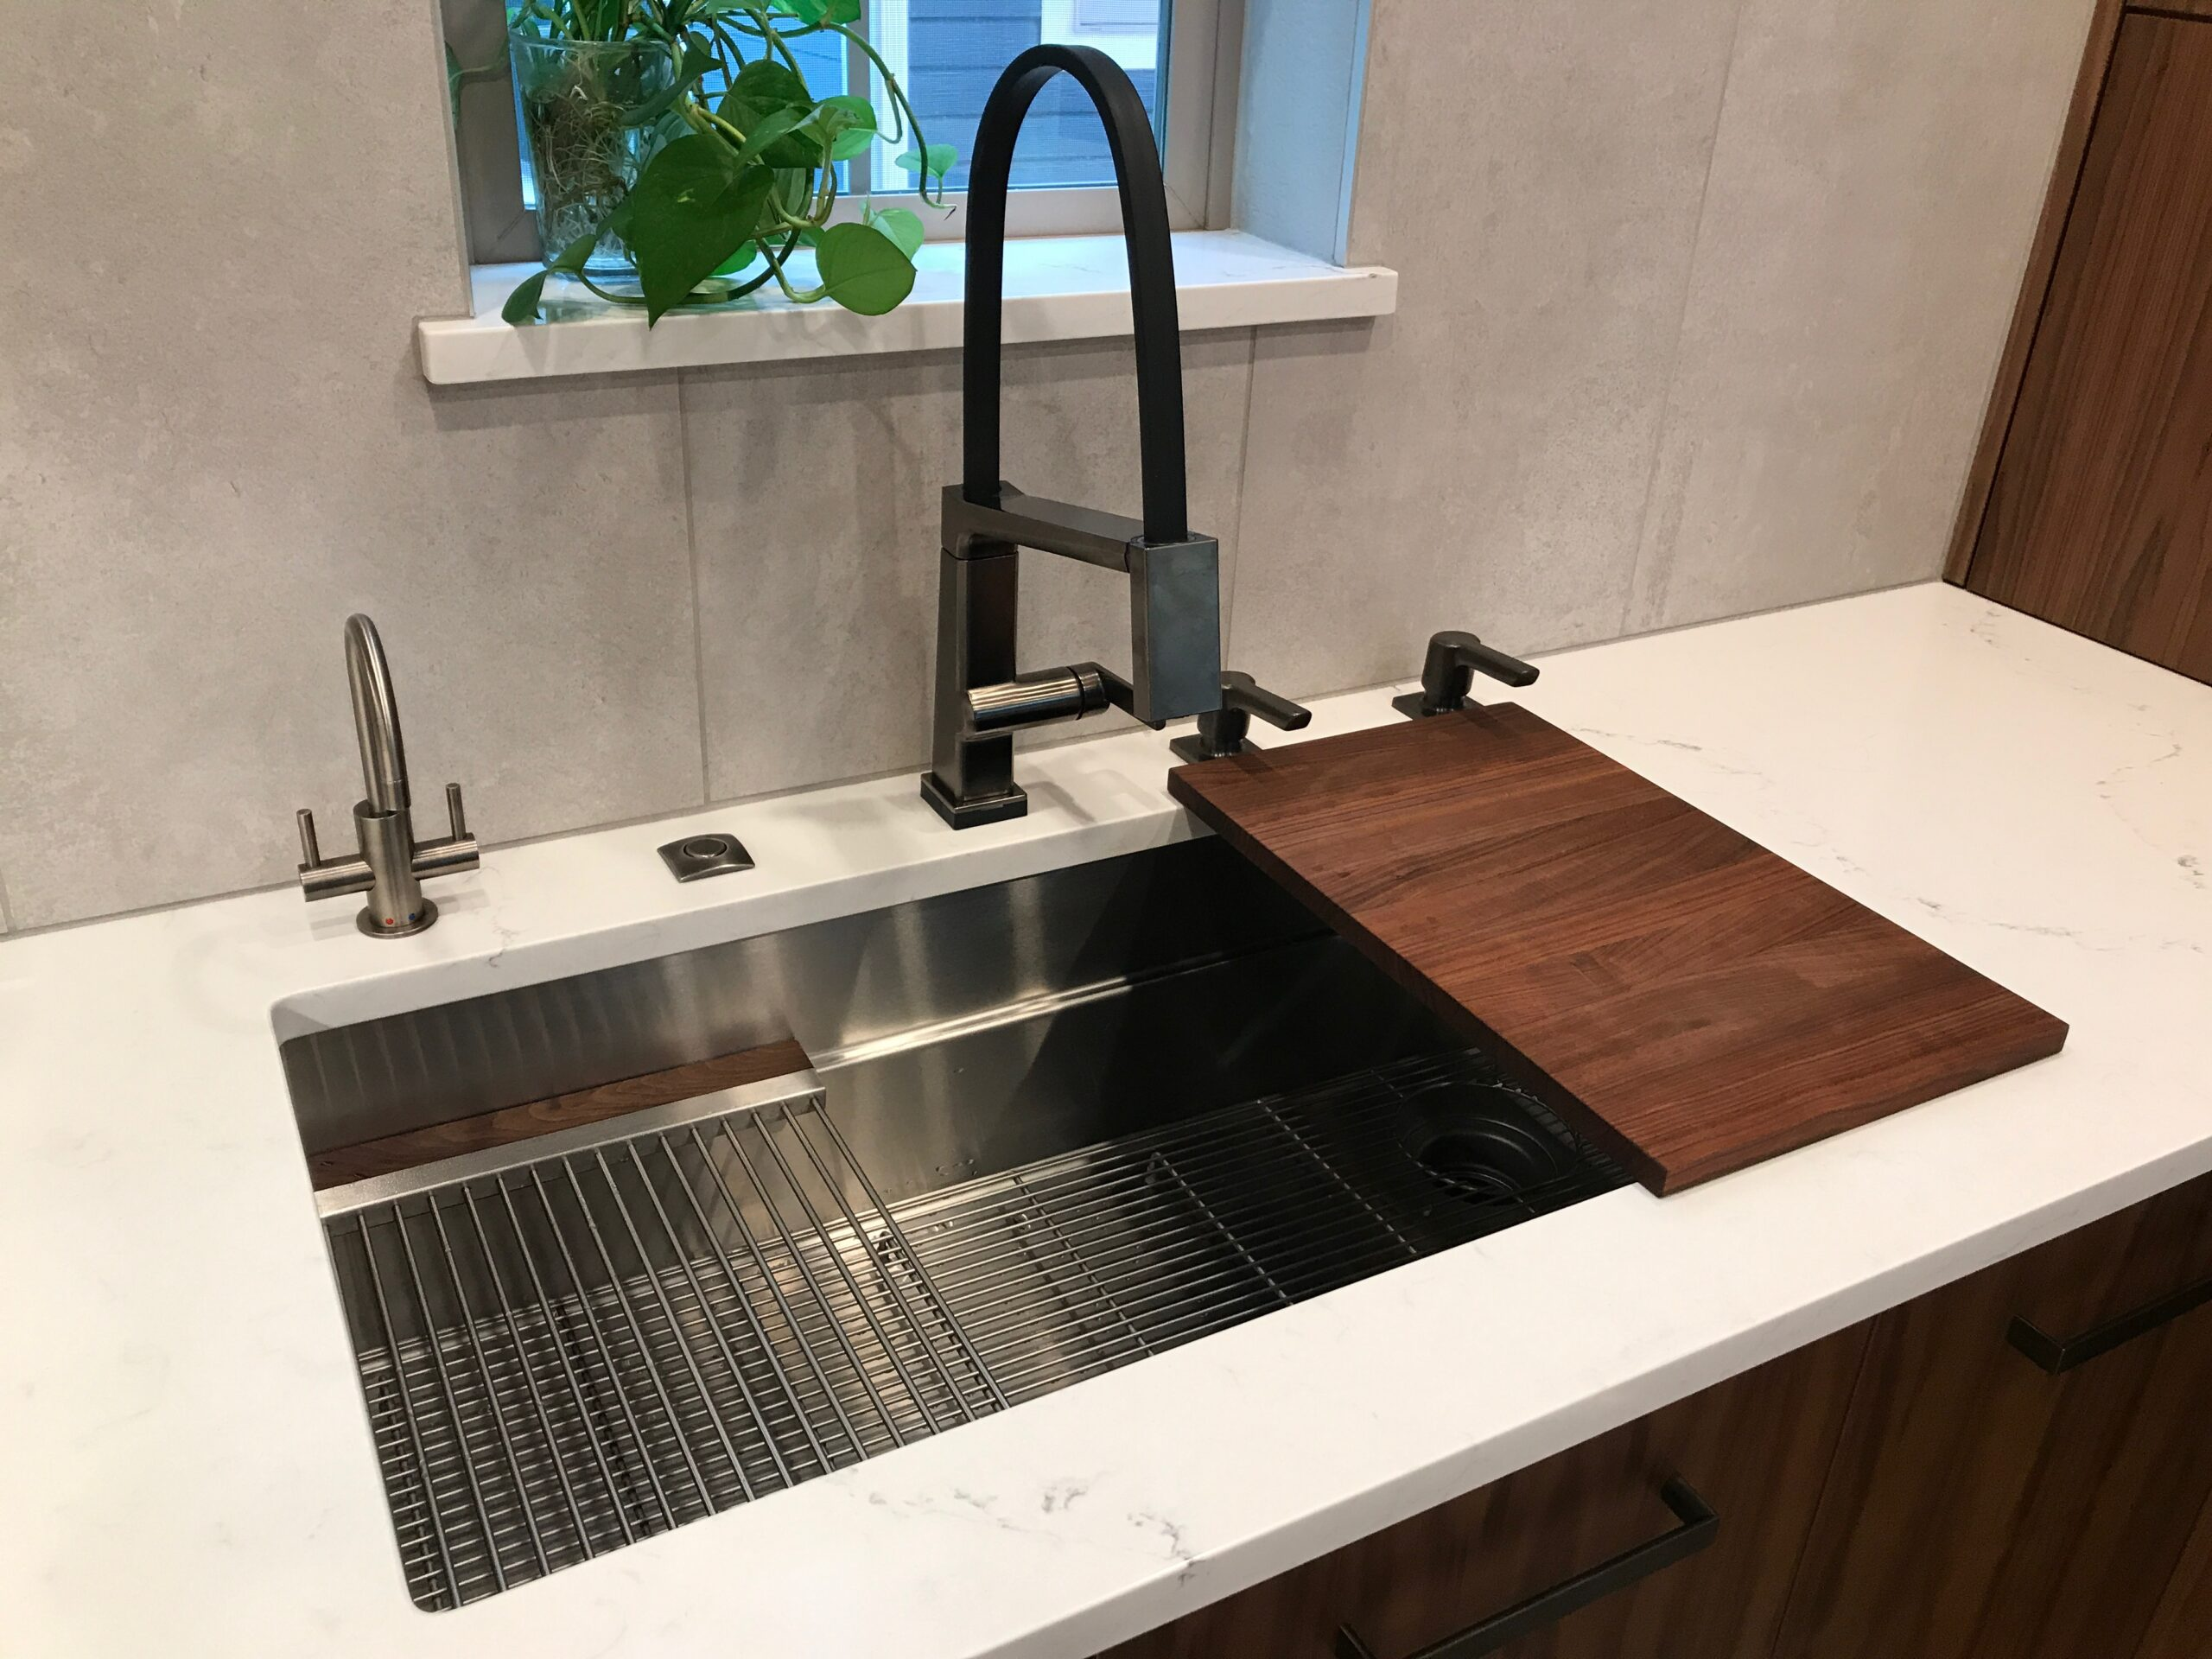 KE Interior Solutions WorkStation sink